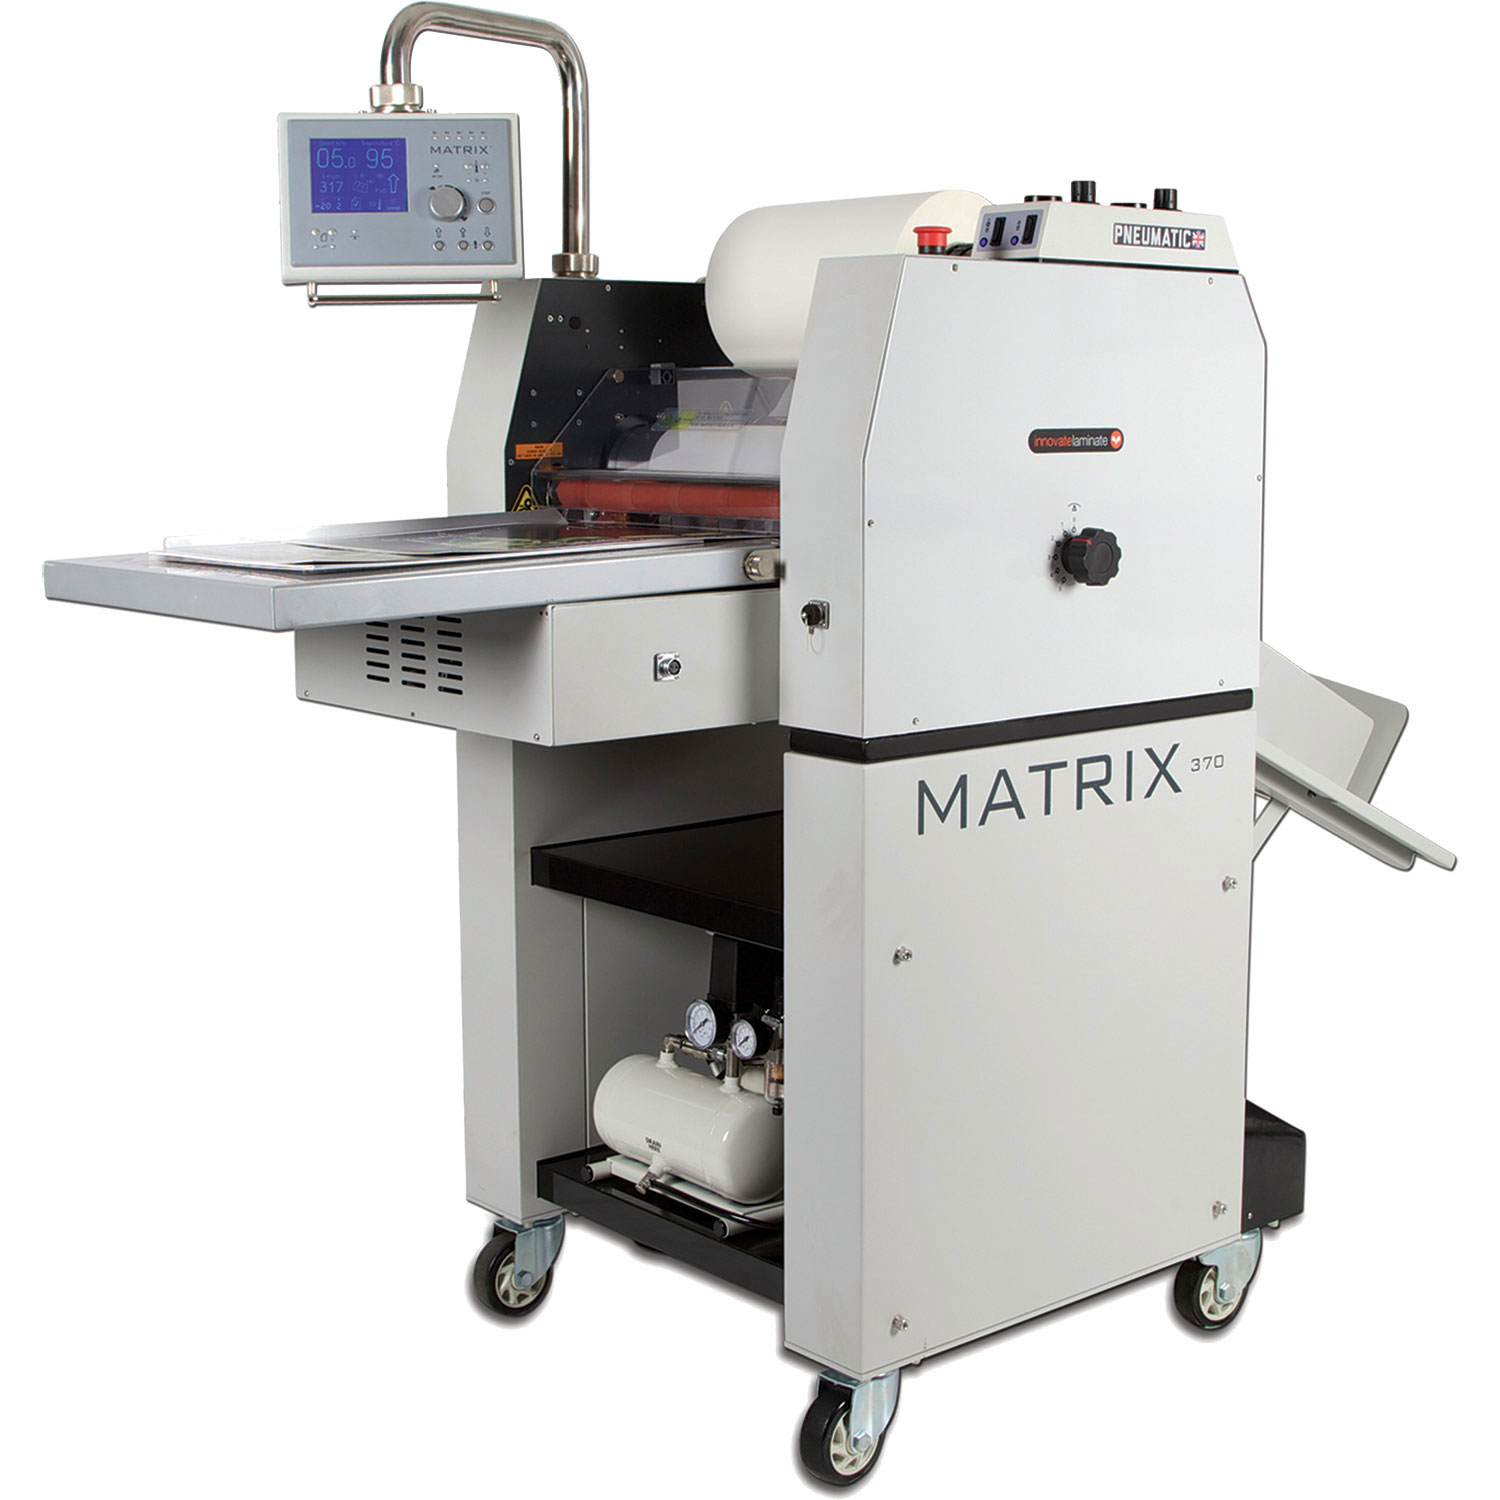 Matrix MX-370P Pneumatic Single-side Roll Laminator